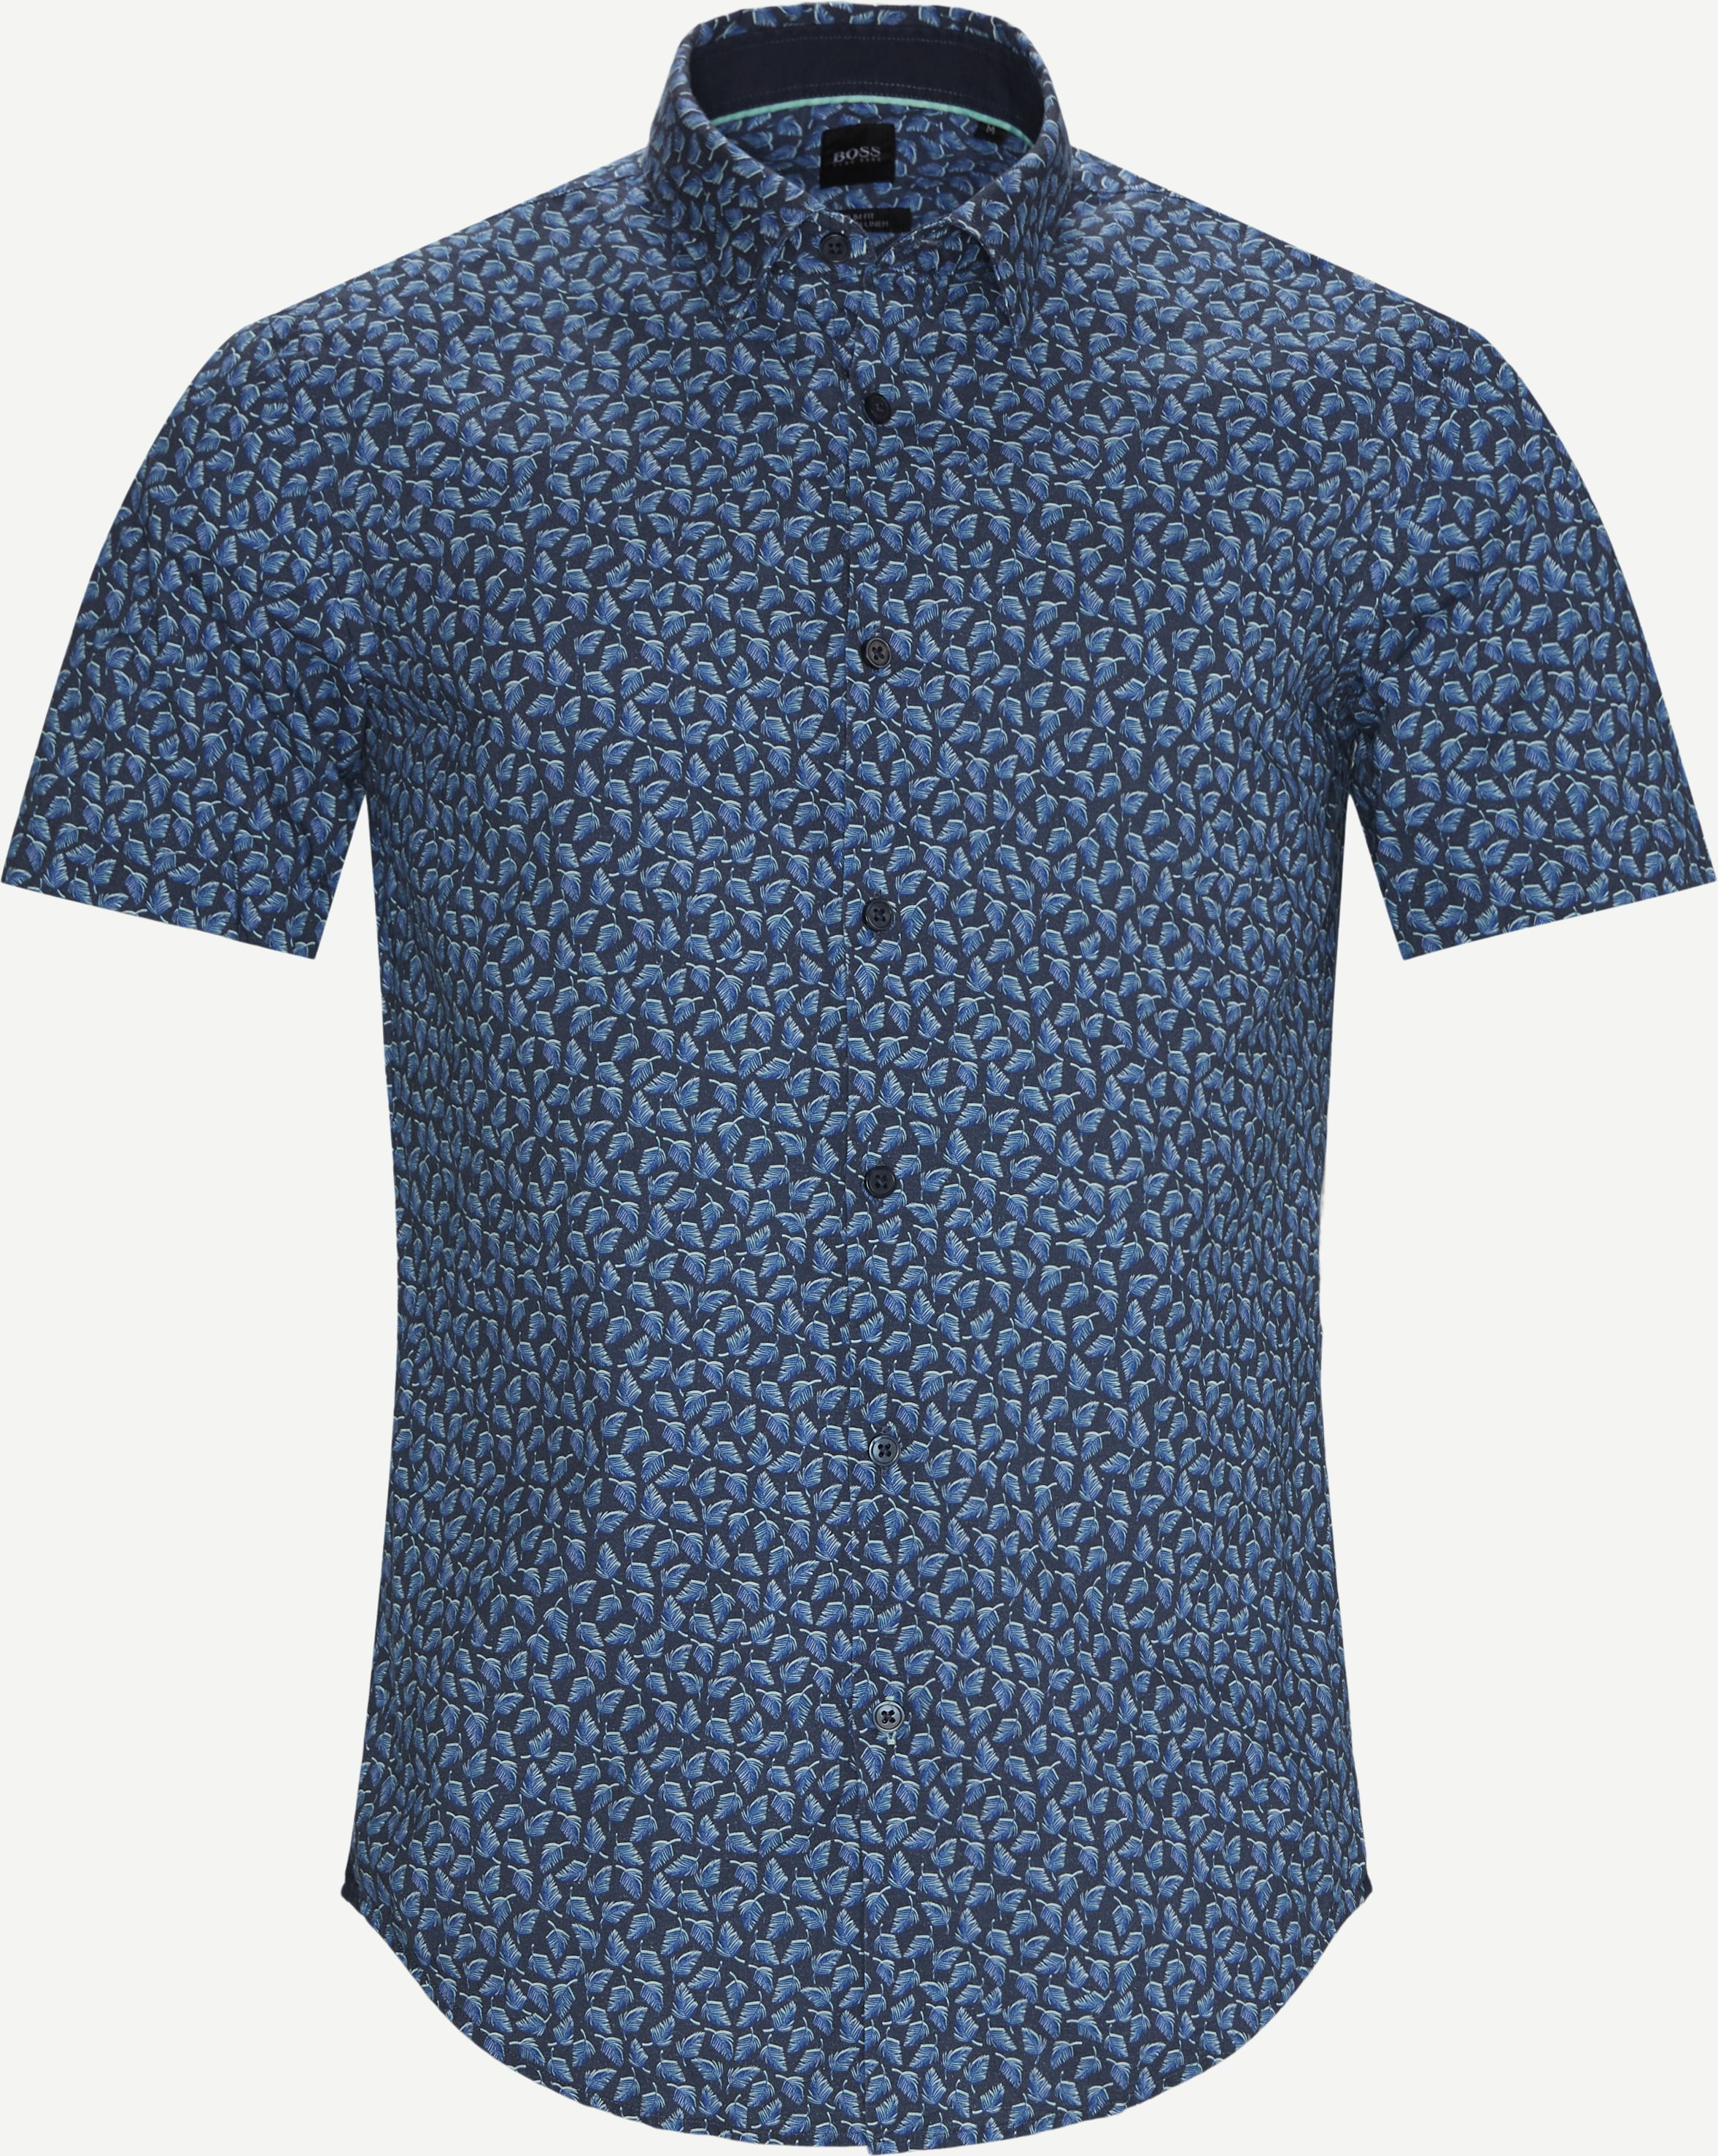 Ronn_2F SS Shirt - Short-sleeved shirts - Slim - Blue